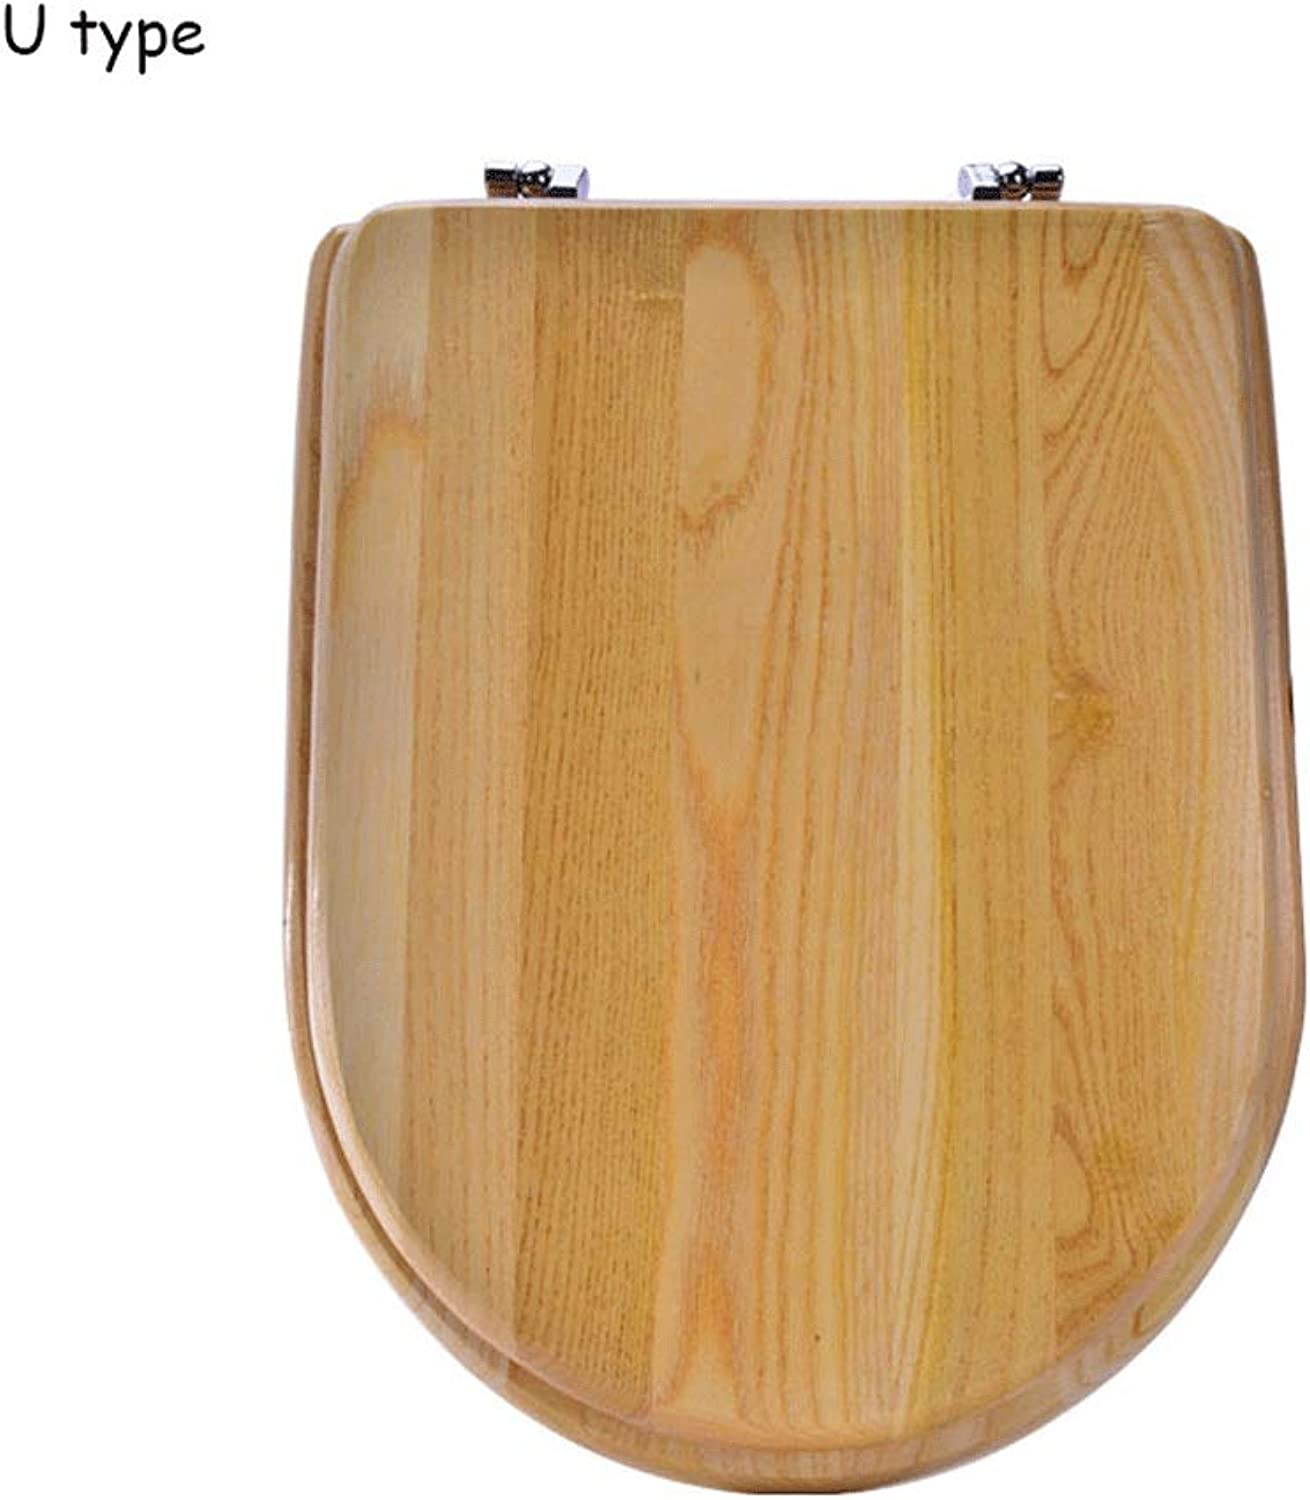 ZIMOM Metal Hinged Solid Wood Toilet Seat Thickened Vintage Universal Toilet Cover Full Wooden Toilet Wood Cover (color   Small U type)